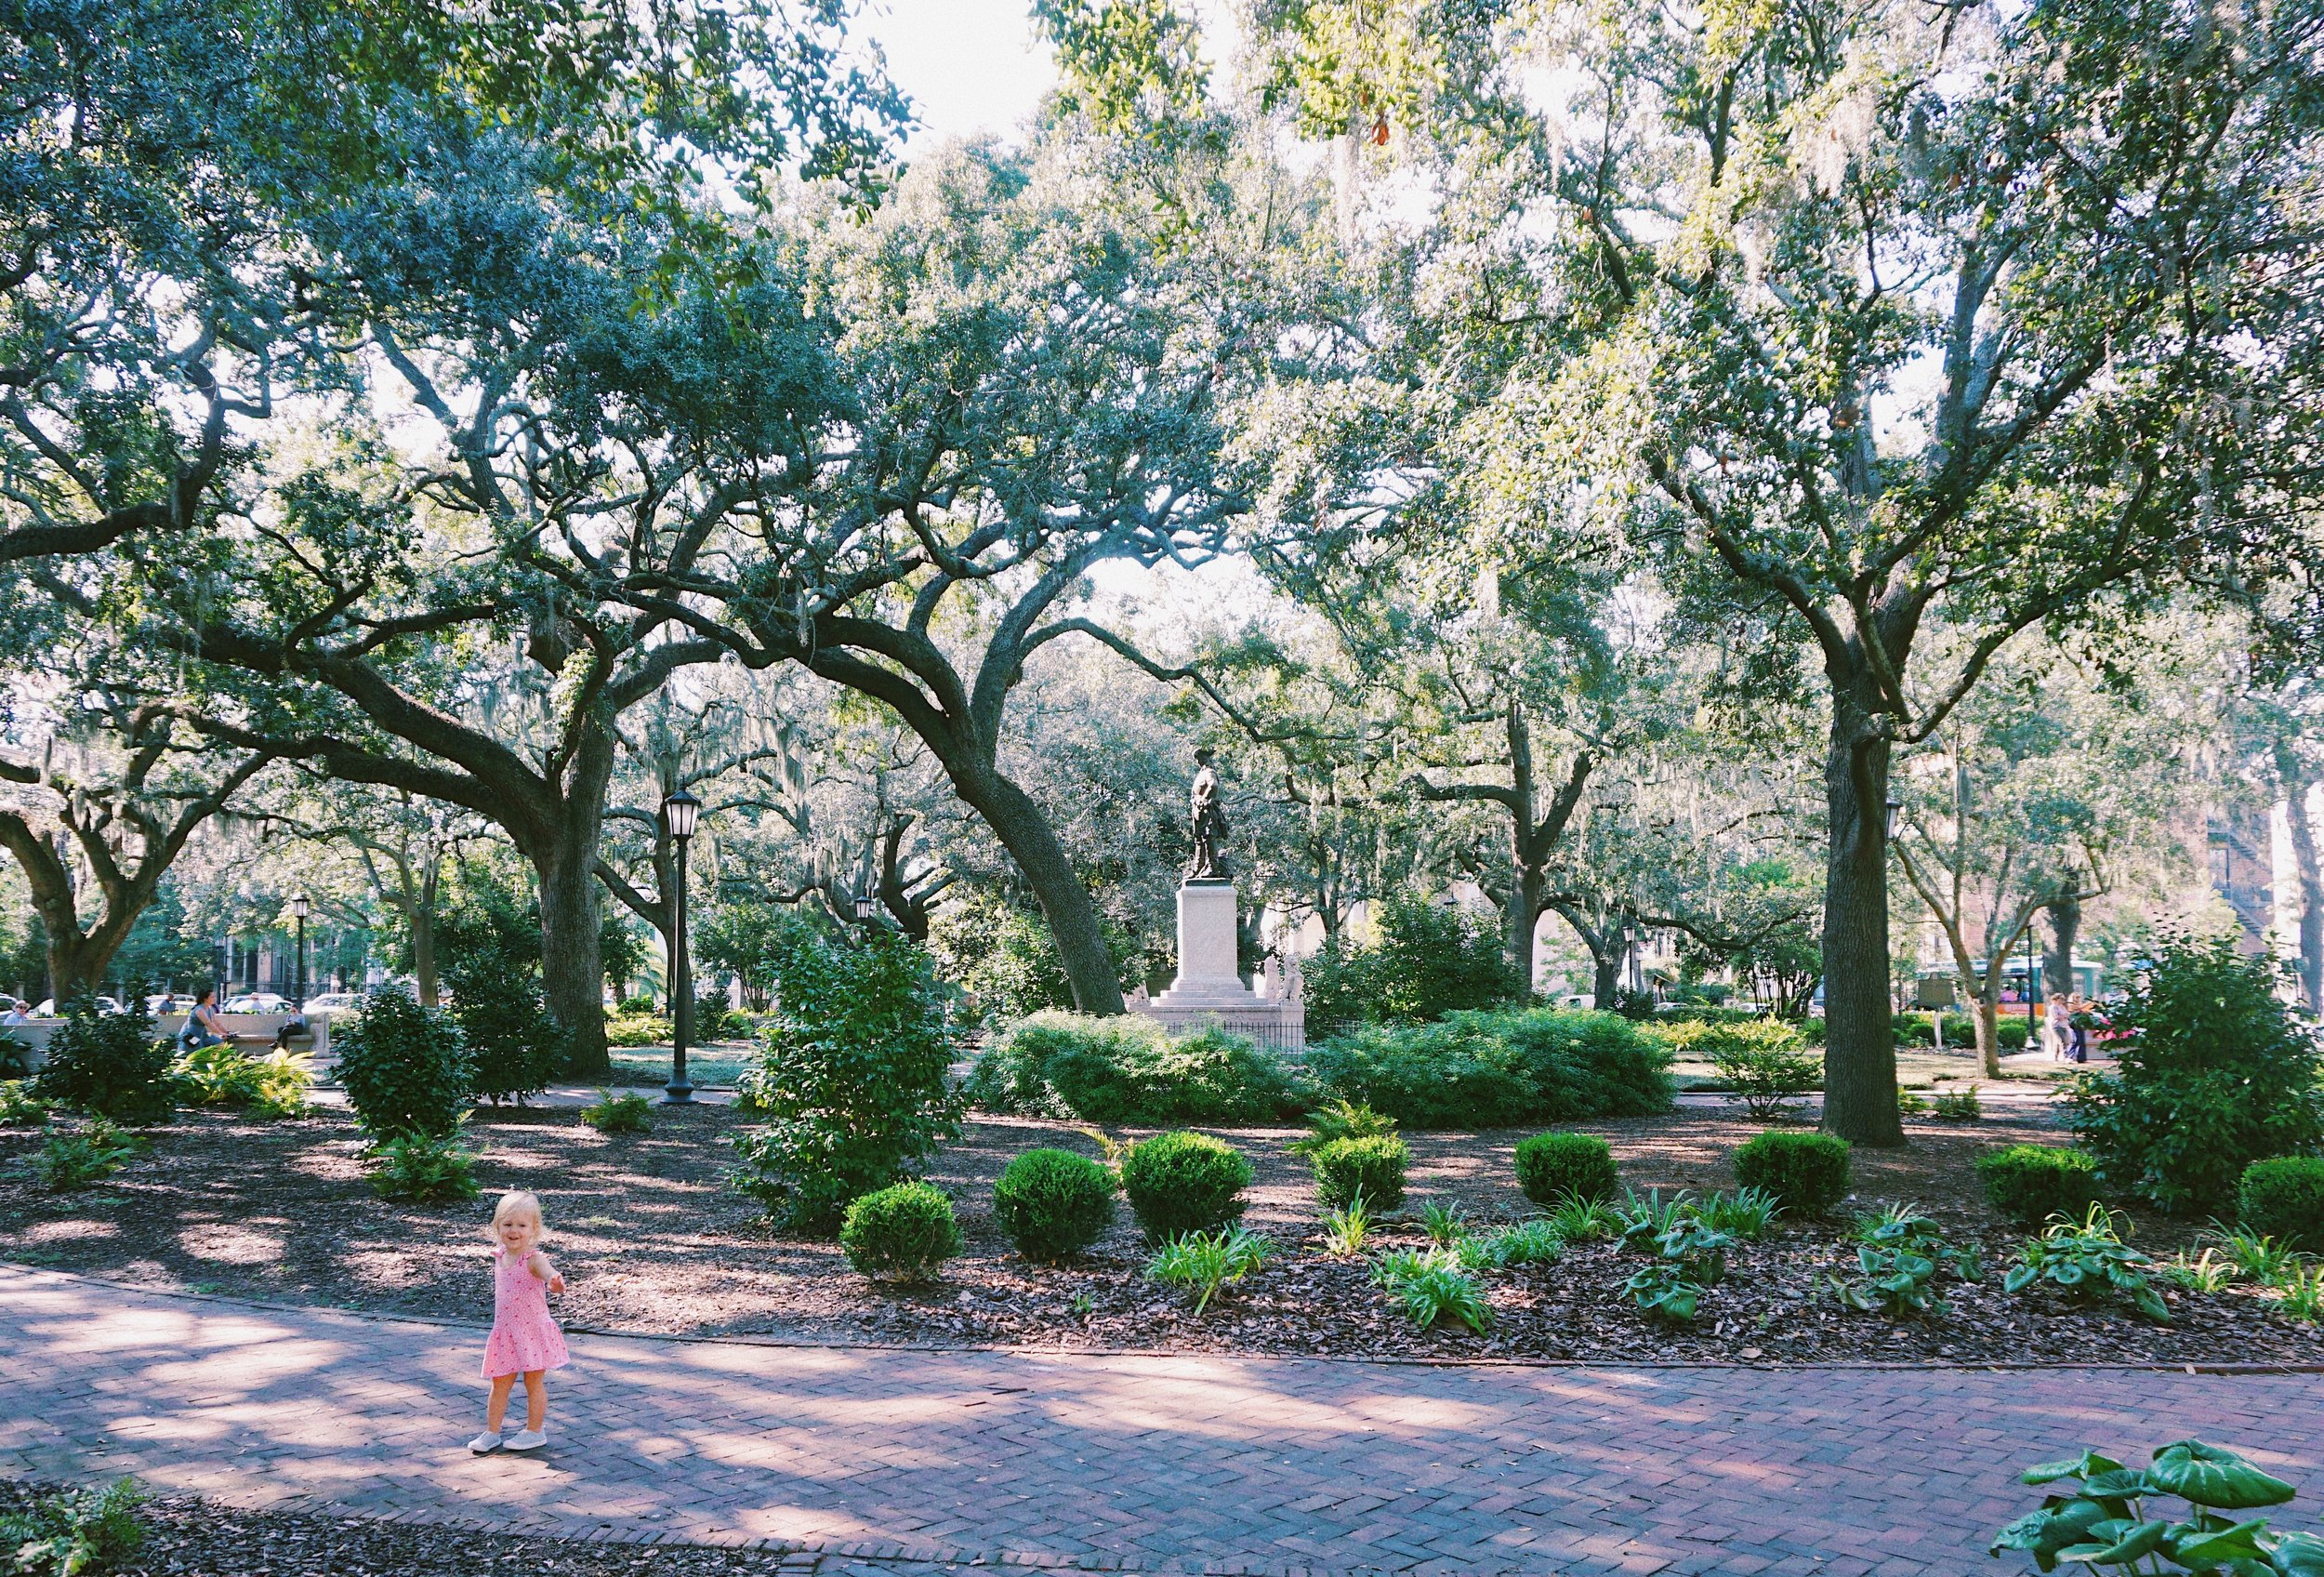 3 Days in Savannah with Kids